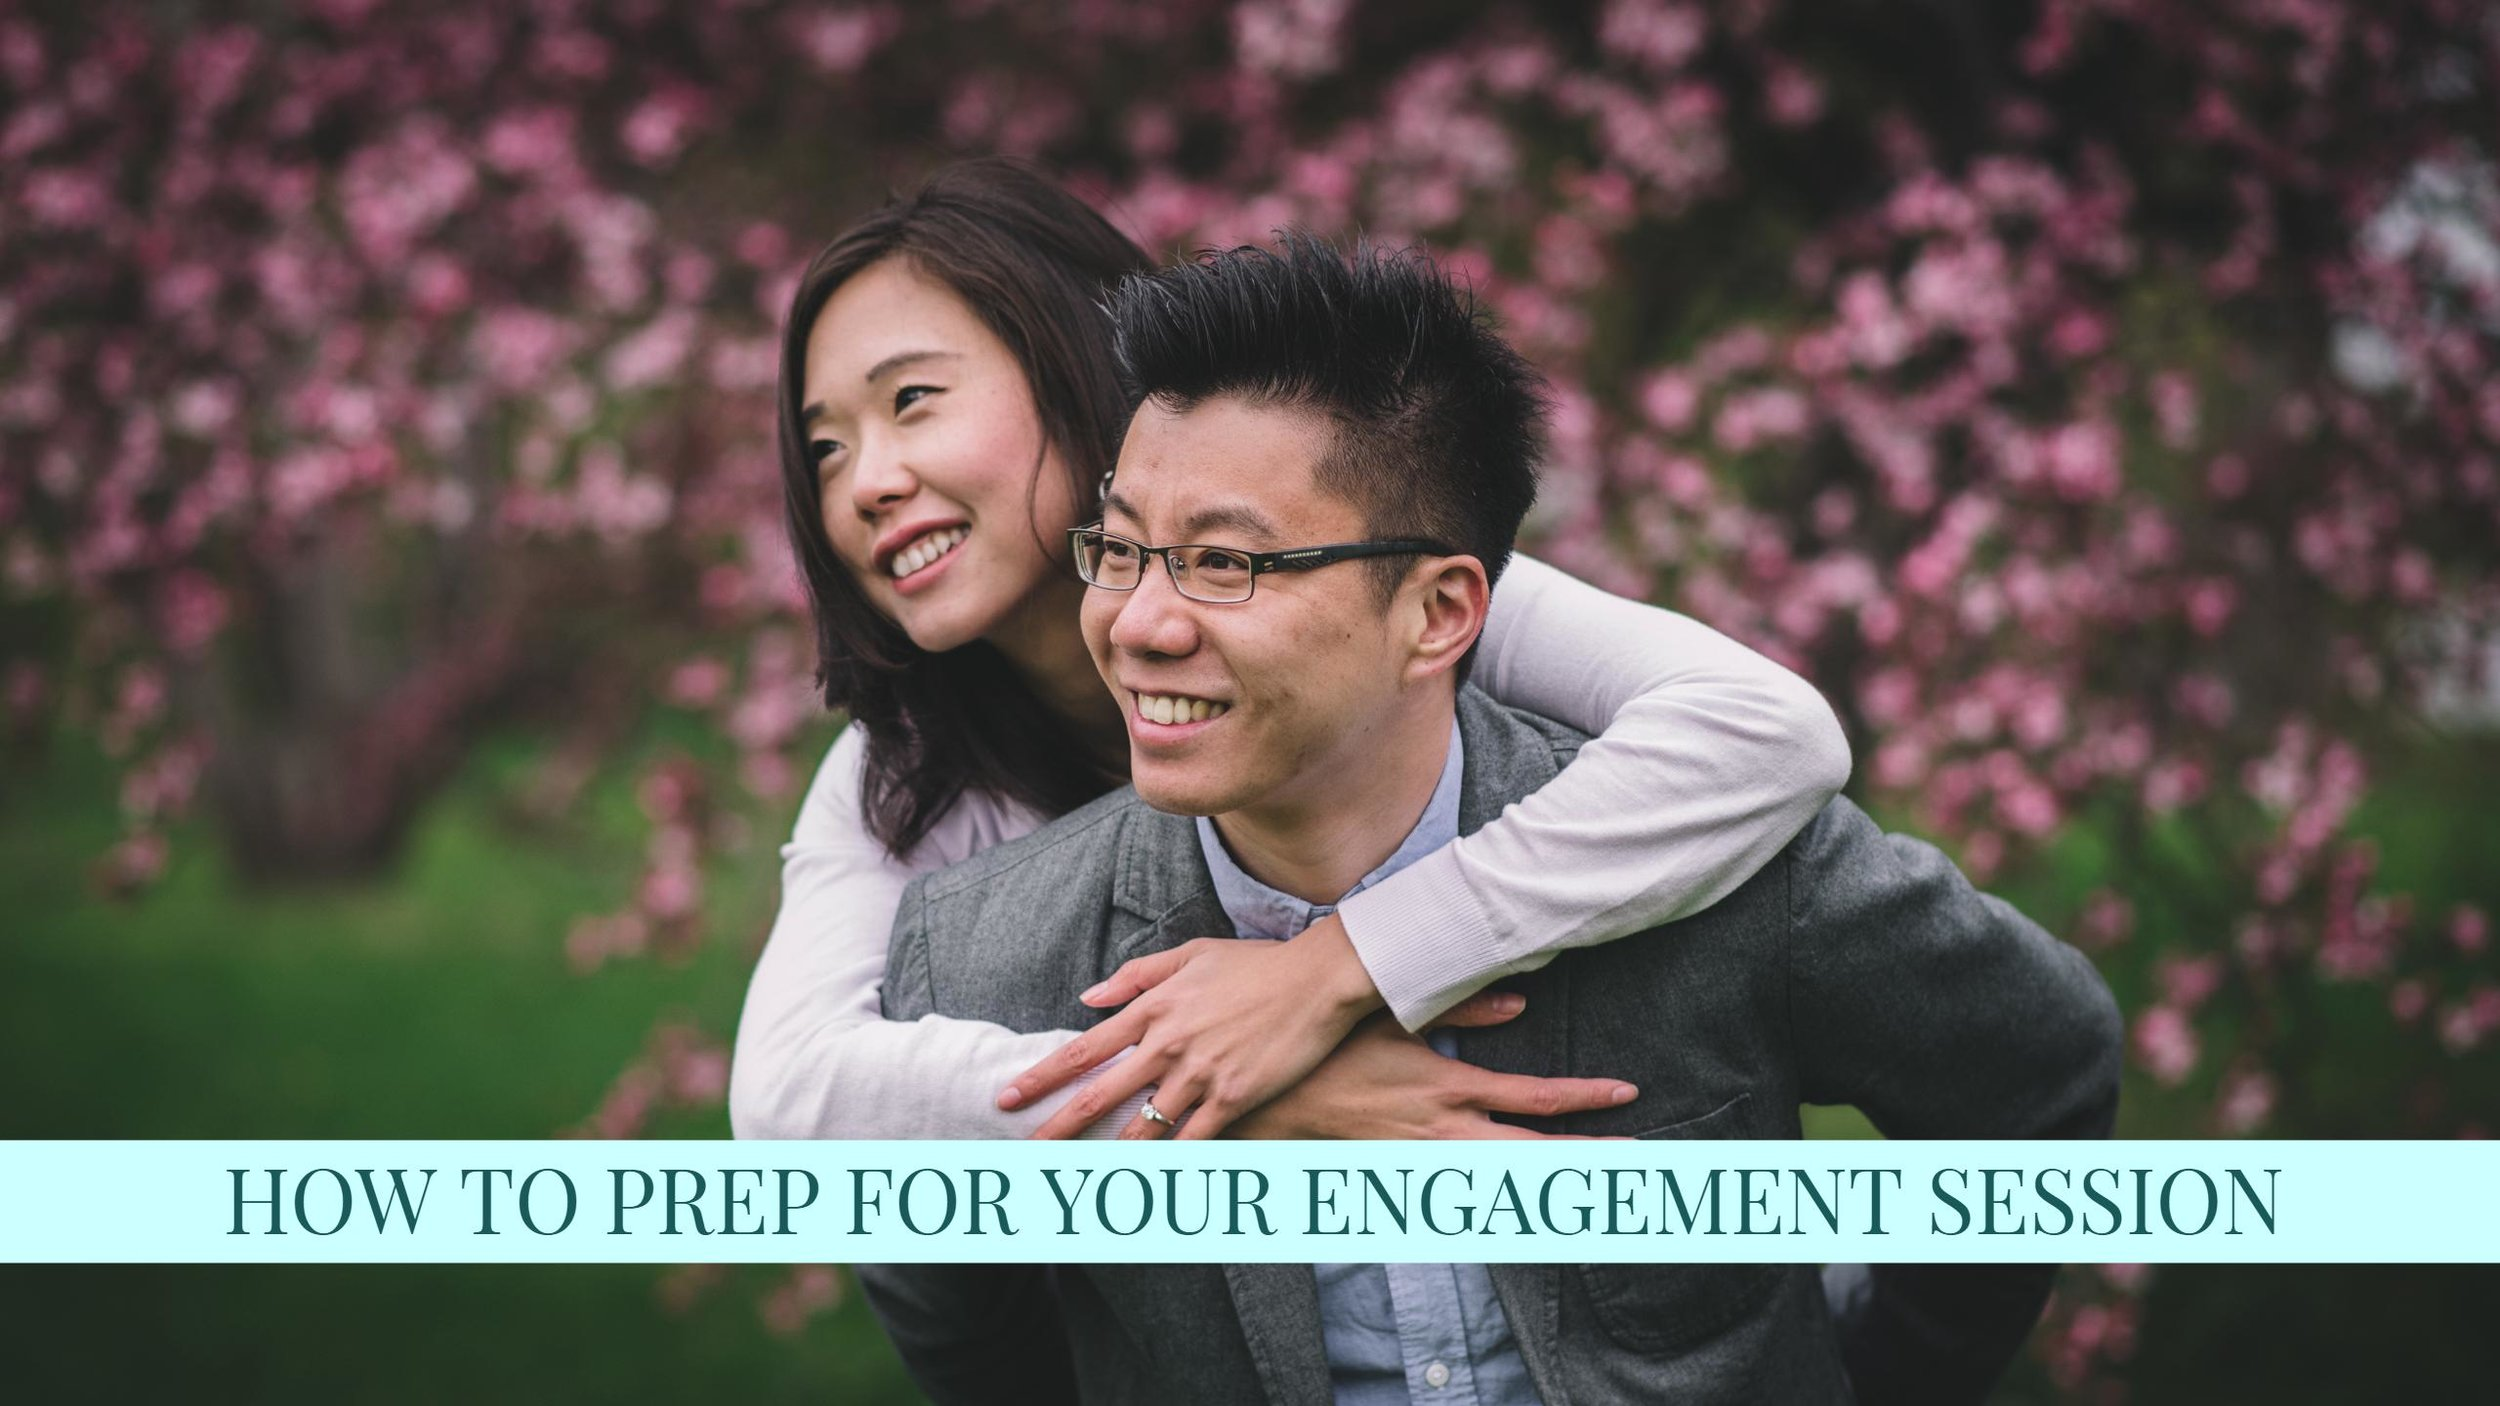 Mocha Tree Studios Ottawa Wedding and Engagement Photographer and Videographer Dark Moody Intimate Authentic Modern Romantic Cinematic Best Candid HOW TO PREPARE FOR YOUR ENGAGEMENT SESSION 1